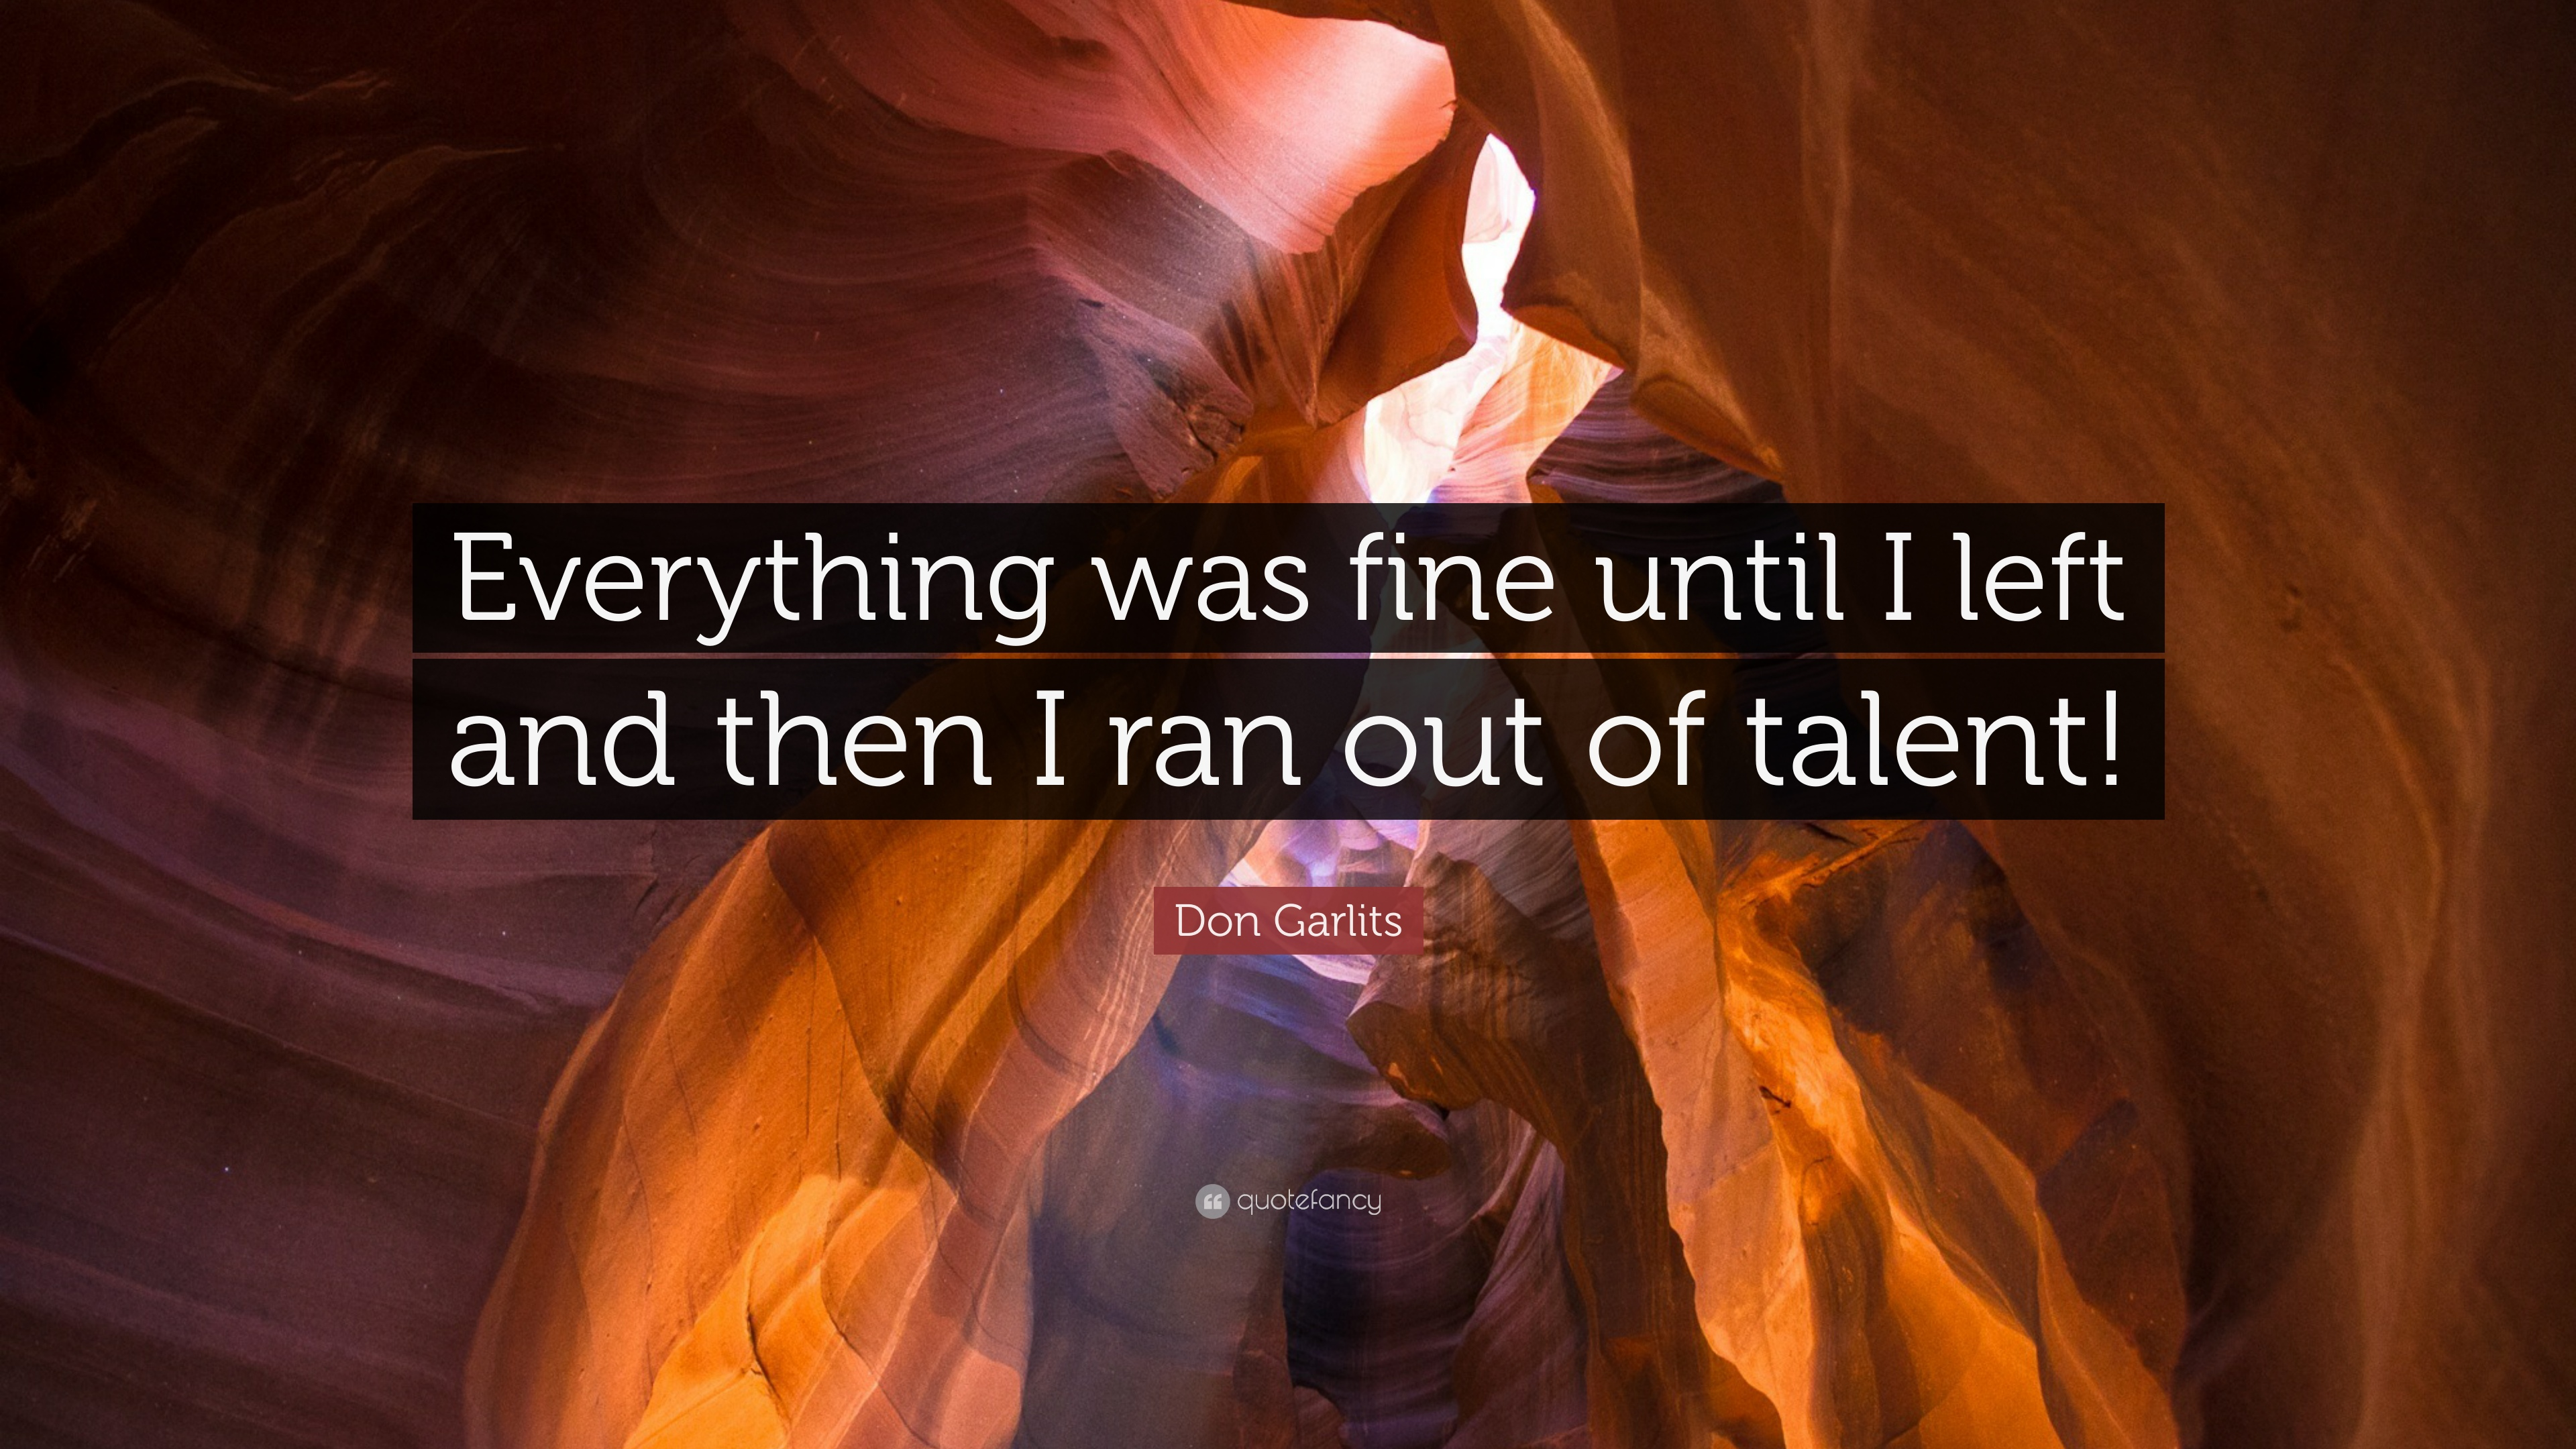 don garlits quote everything was fine until i left and then i ran out of talent 7 wallpapers quotefancy don garlits quote everything was fine